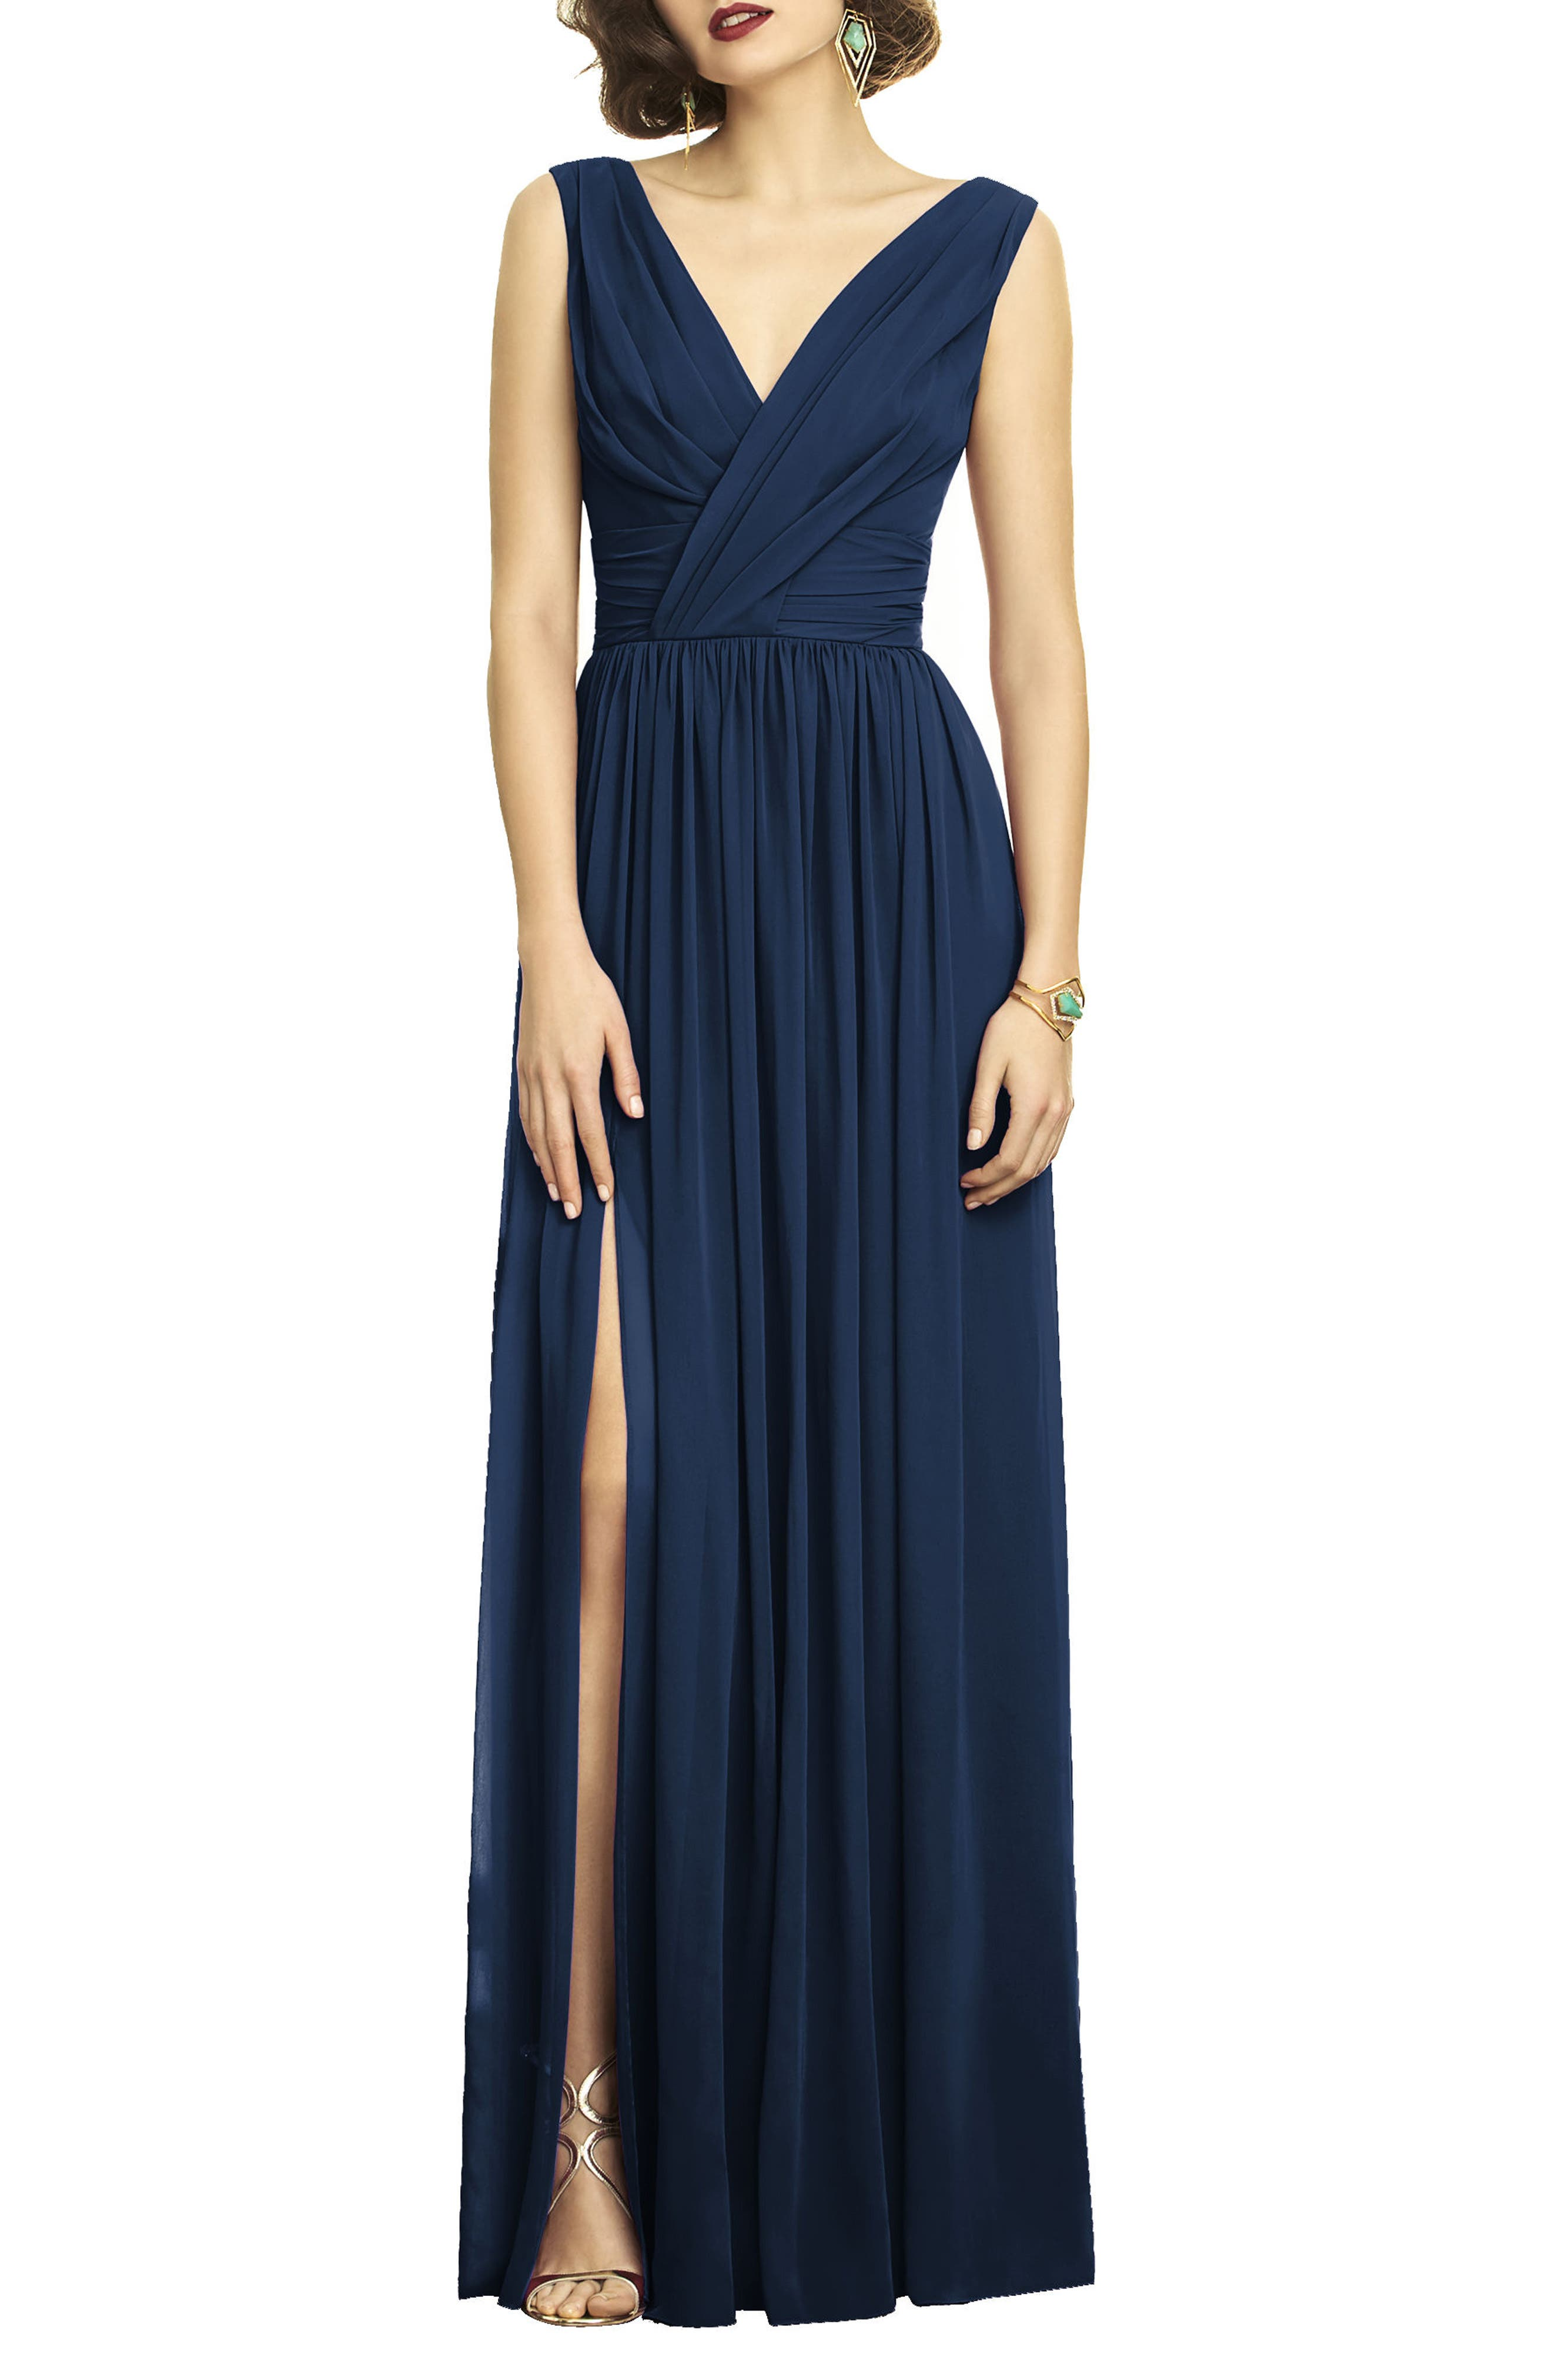 Dessy collection bridesmaid wedding party dresses nordstrom ombrellifo Choice Image